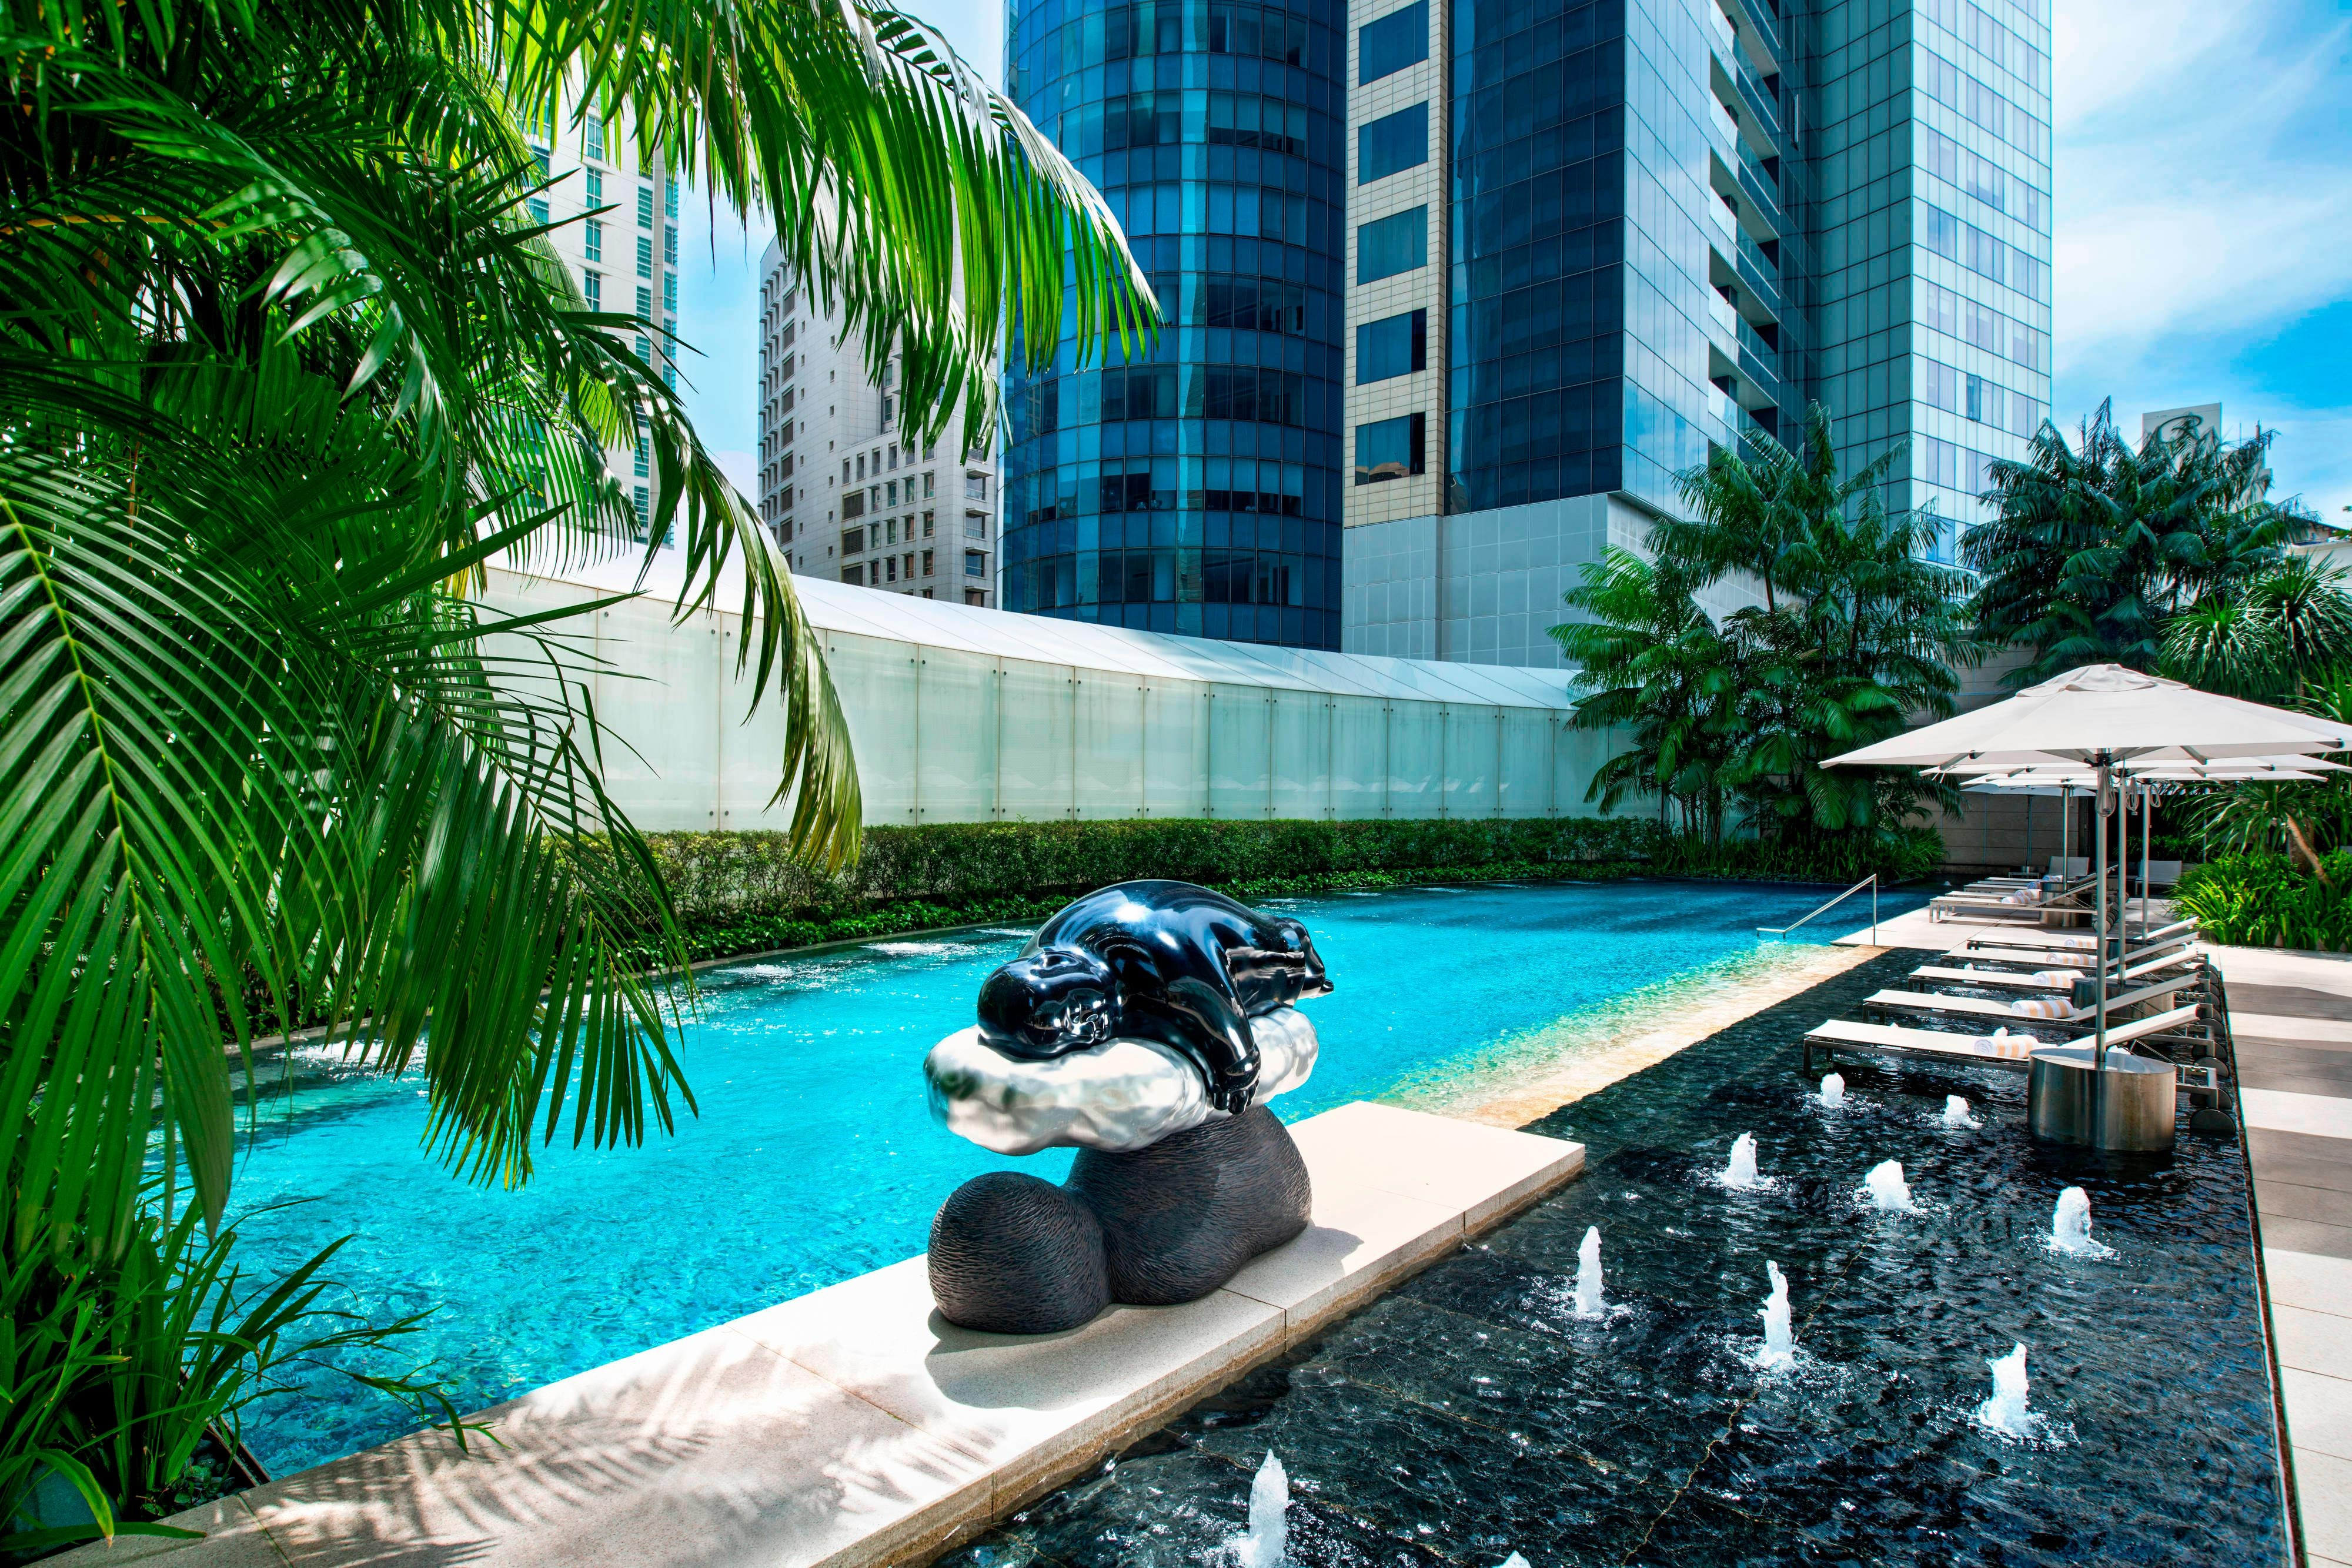 The St. Regis Singapore Tropical Pool